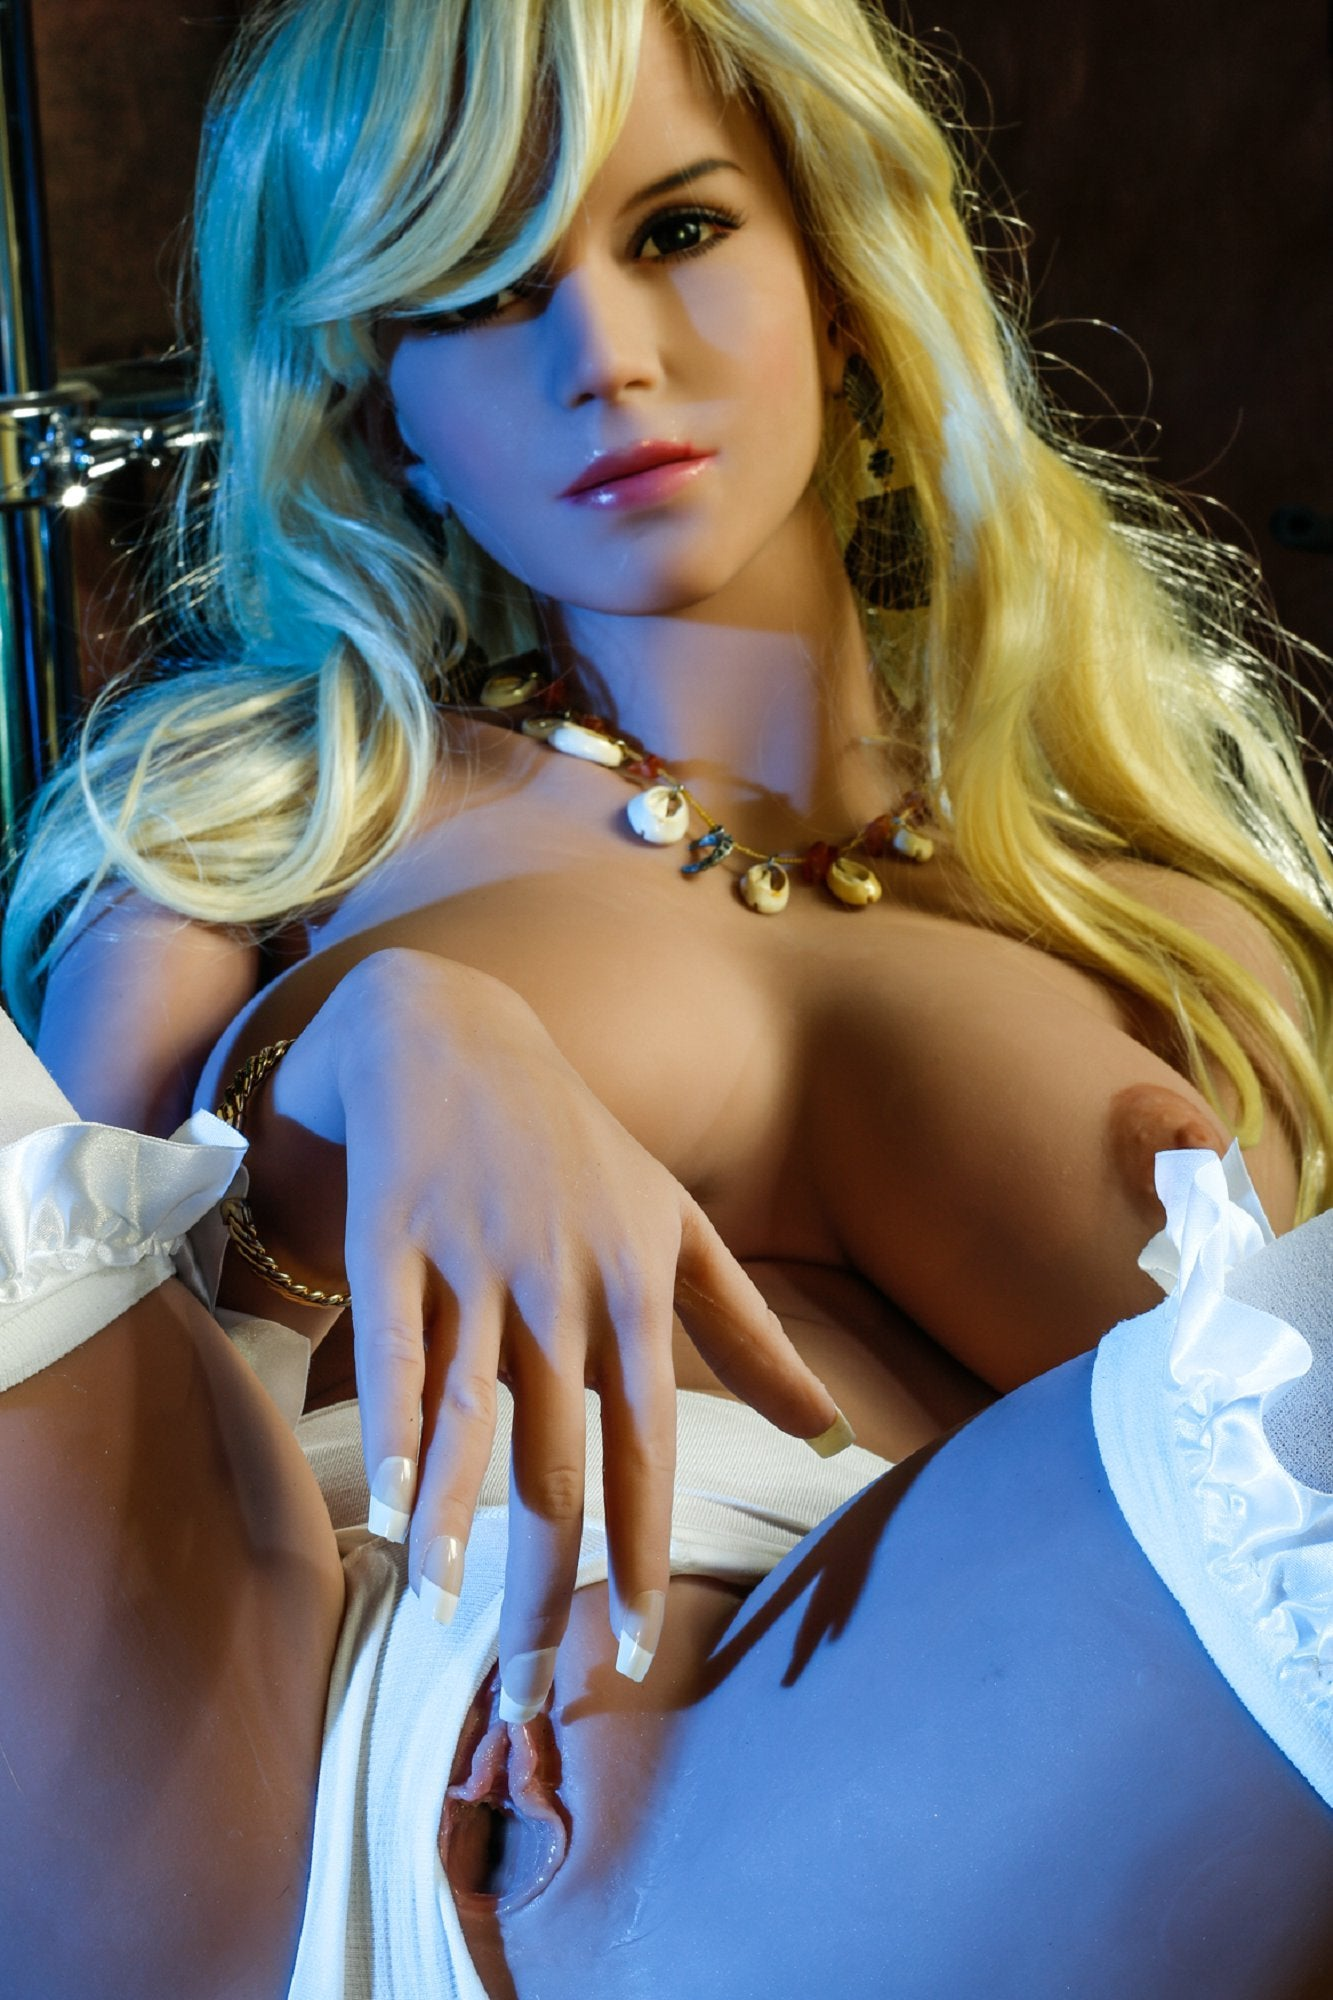 camilla 155cm blonde medium tits skinny tpe yl sex doll(8)